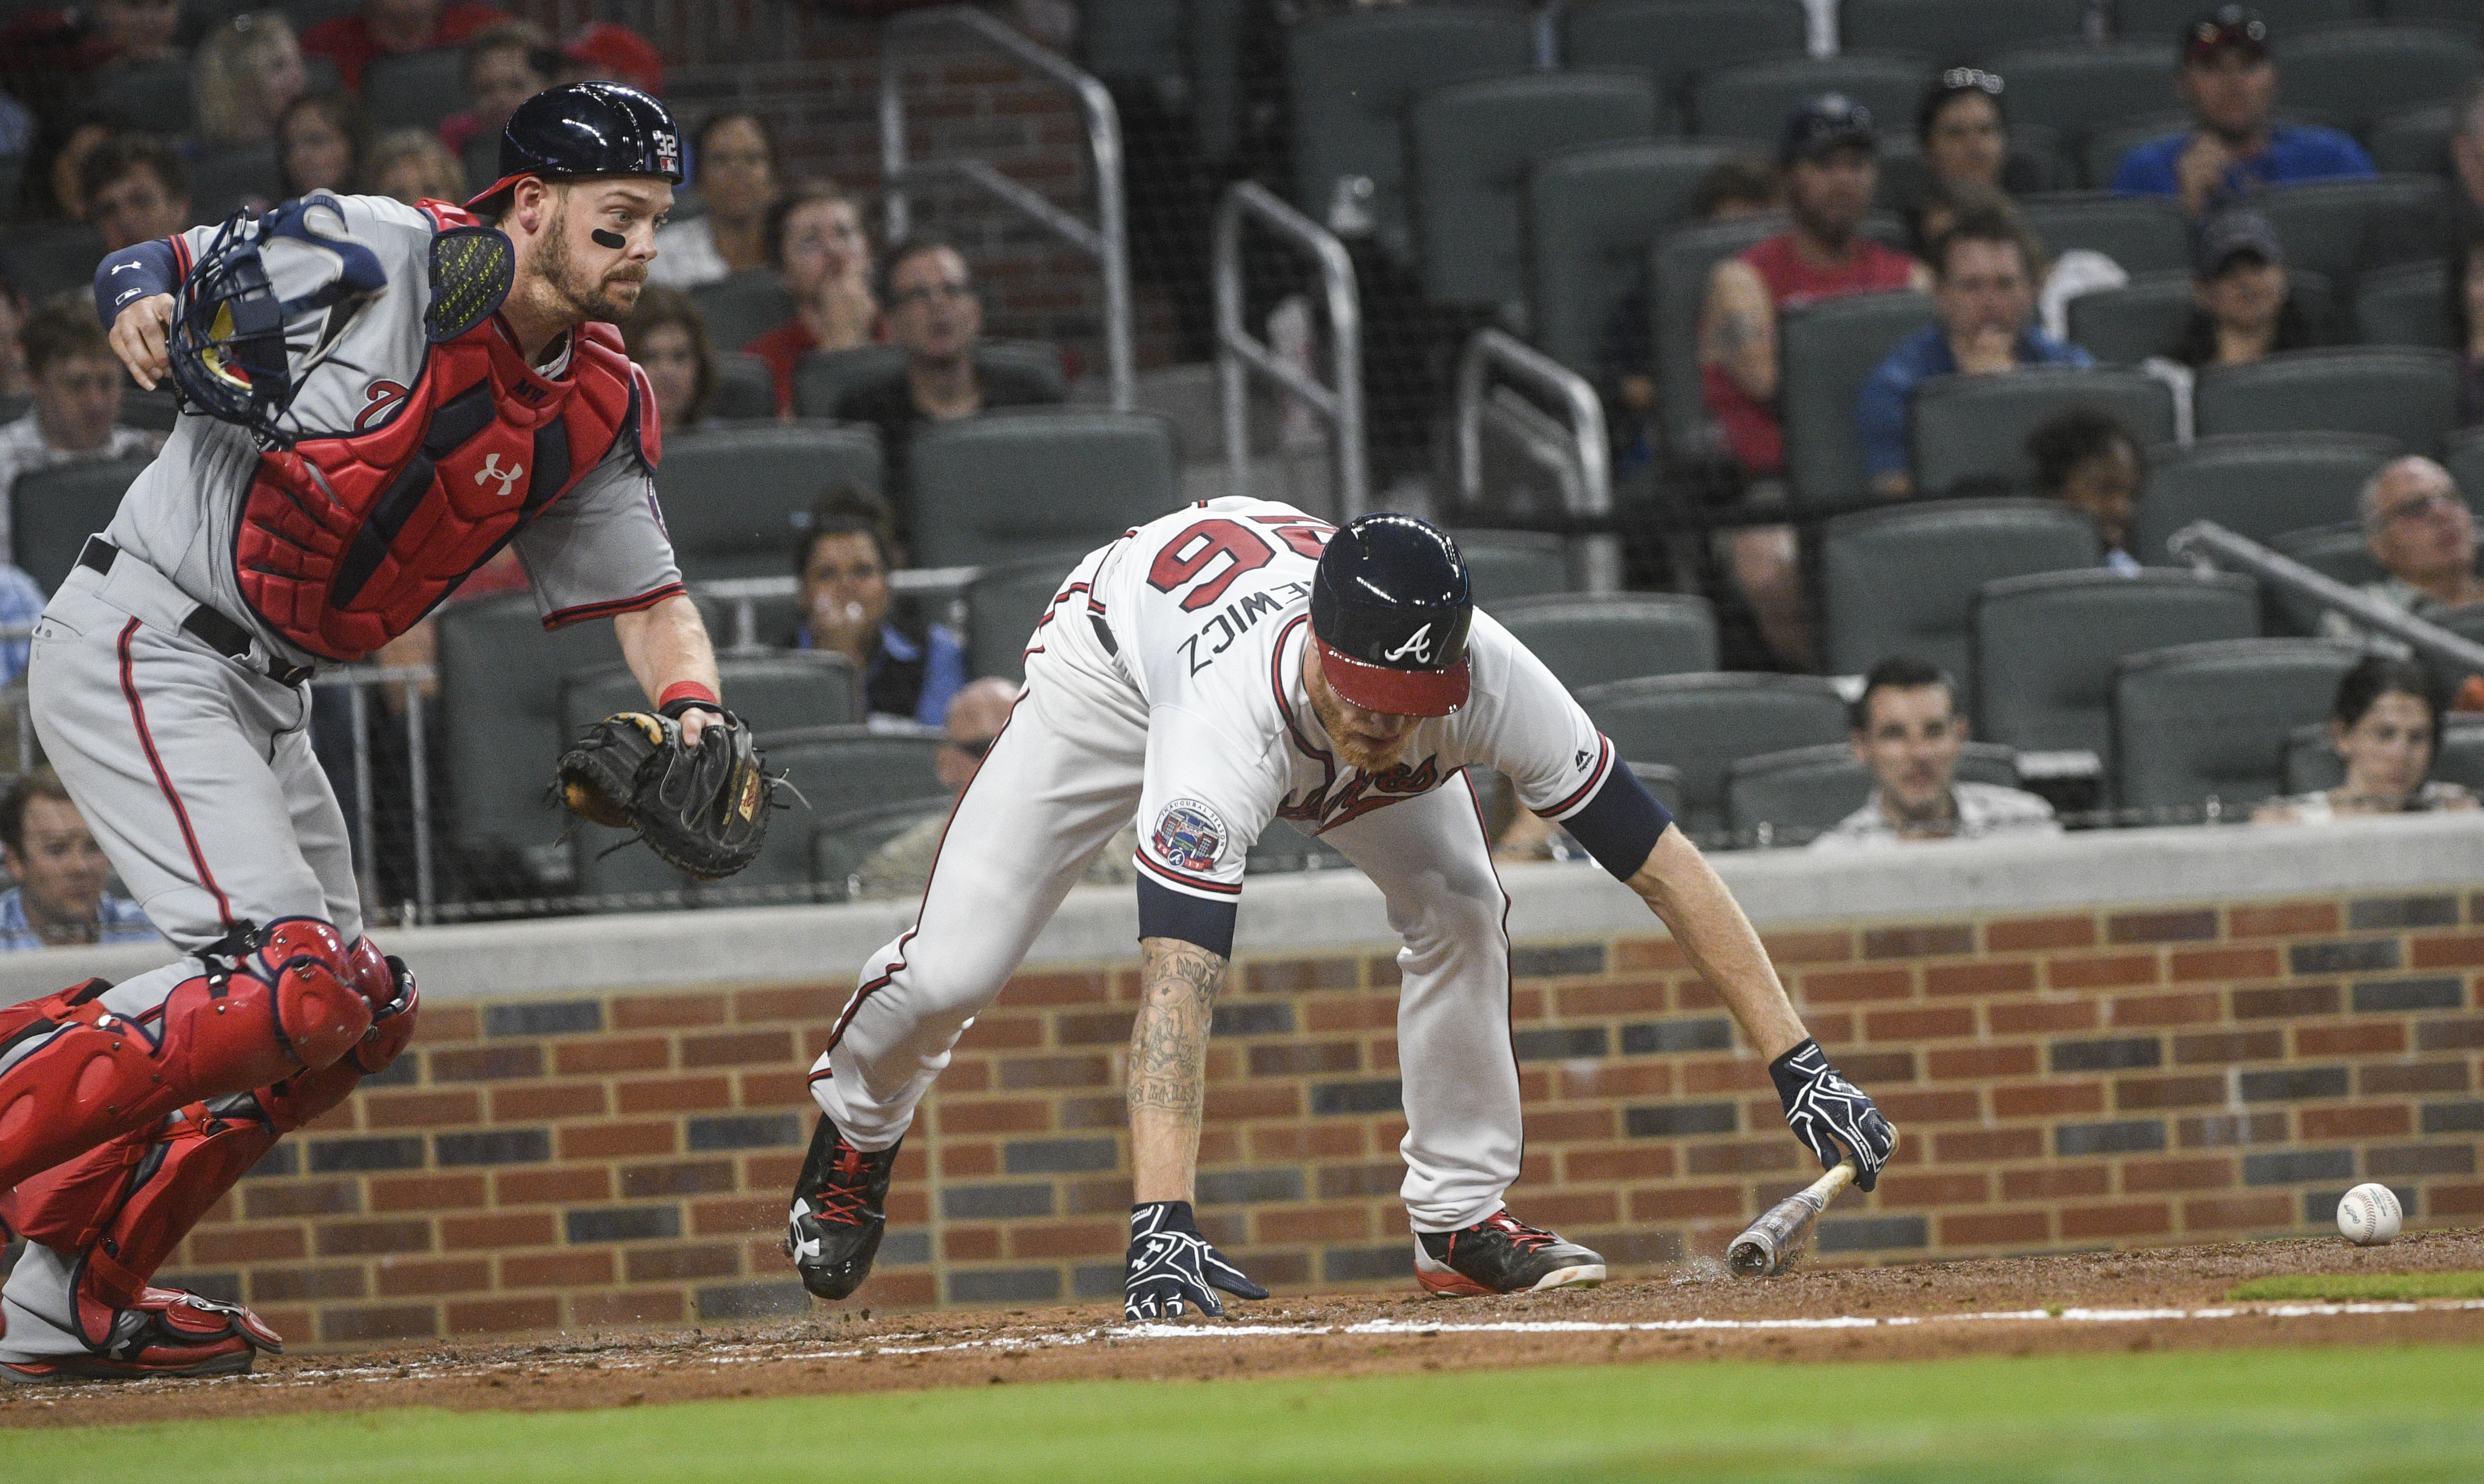 Atlanta Braves' Mike Foltynewicz loses his balance after laying down a bunt, as Washington Nationals catcher Matt Wieters chases the ball during the third inning of a baseball game, Tuesday, April 18, 2017, in Atlanta. Foltynewicz was out at first. (AP Photo/John Amis)